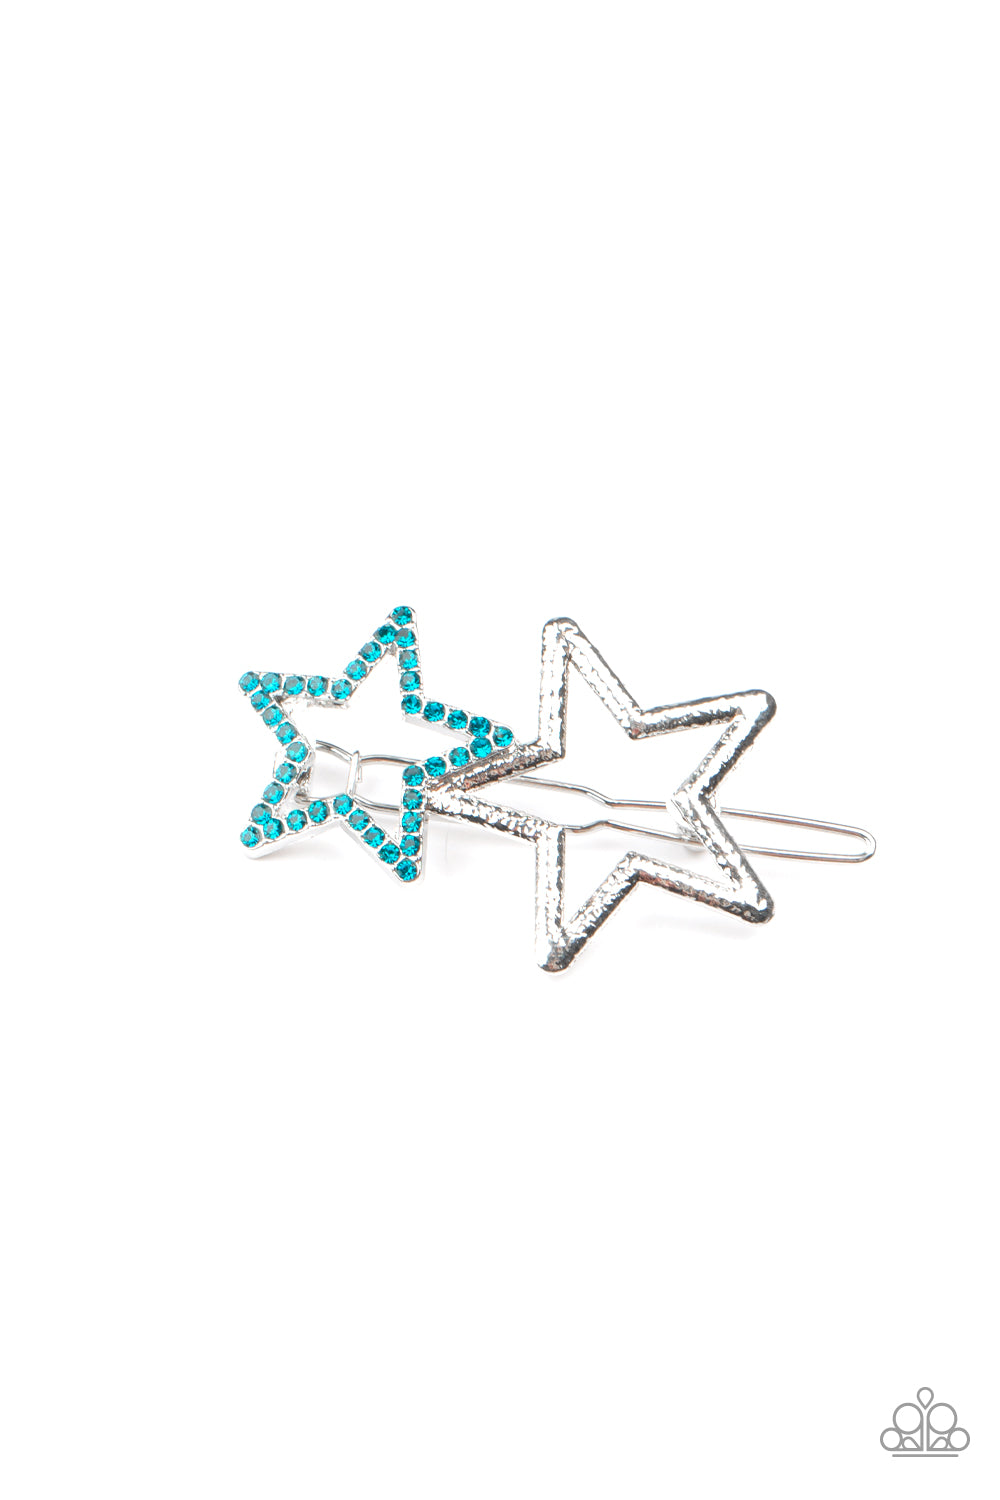 Paparazzi Accessories - Lets Get This Party STAR-ted! - Blue Hair Clip